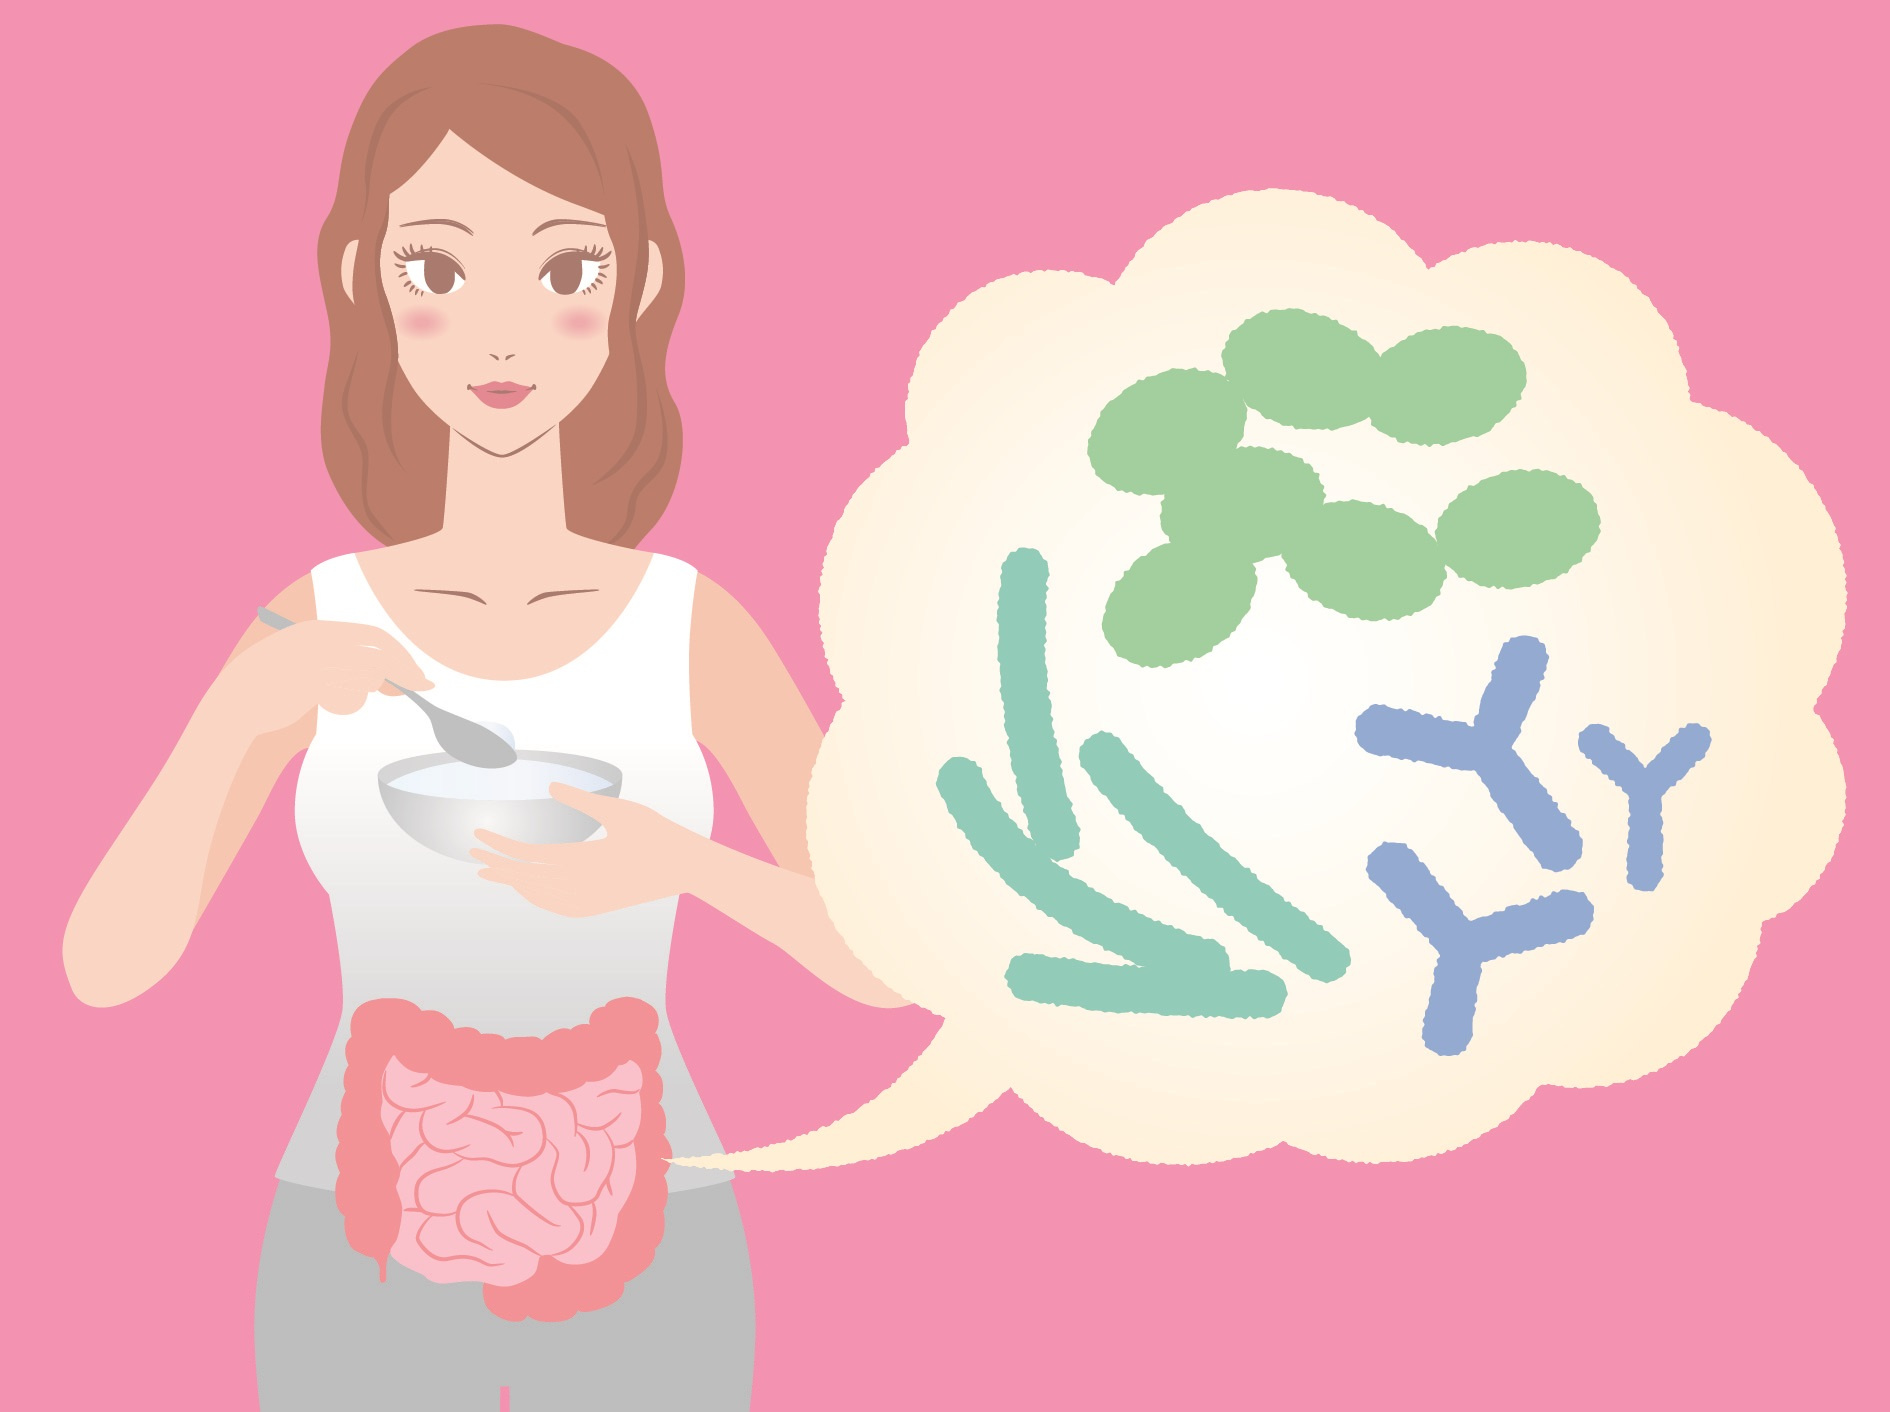 Elemental Health Nutrition Gut MIcrobiome